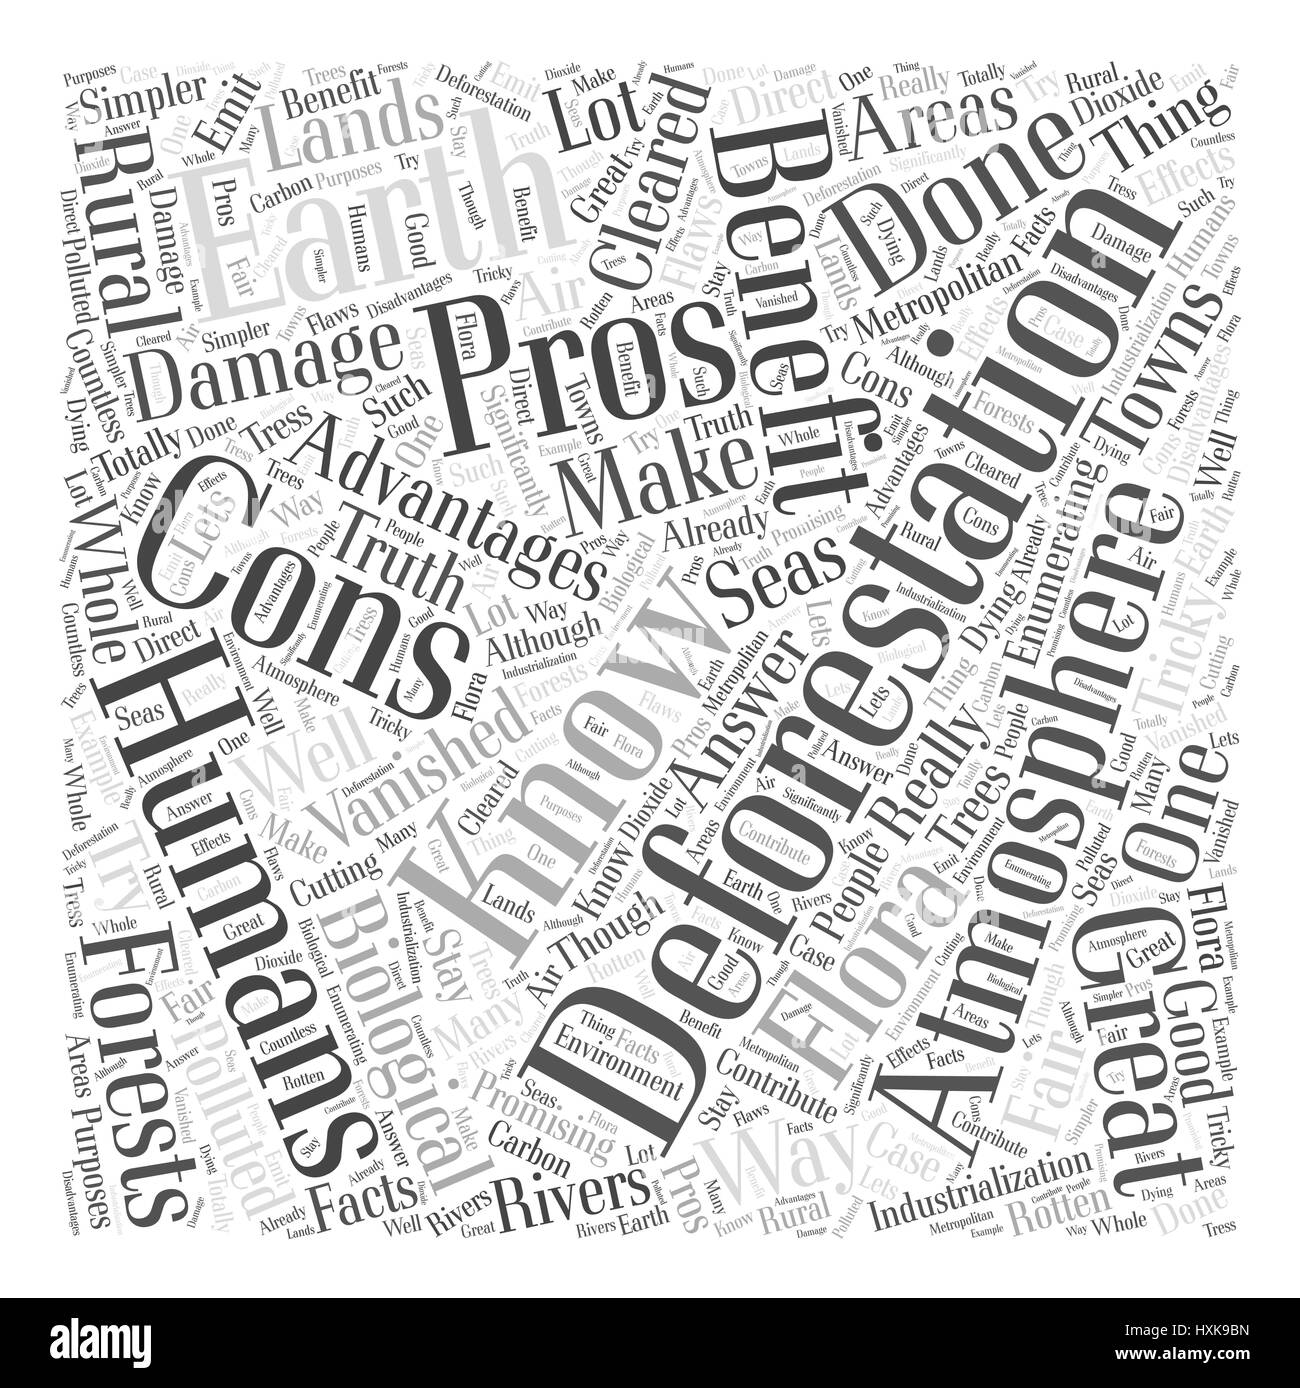 The Pros And Cons of Deforestation Word Cloud Concept Stock Vector ...